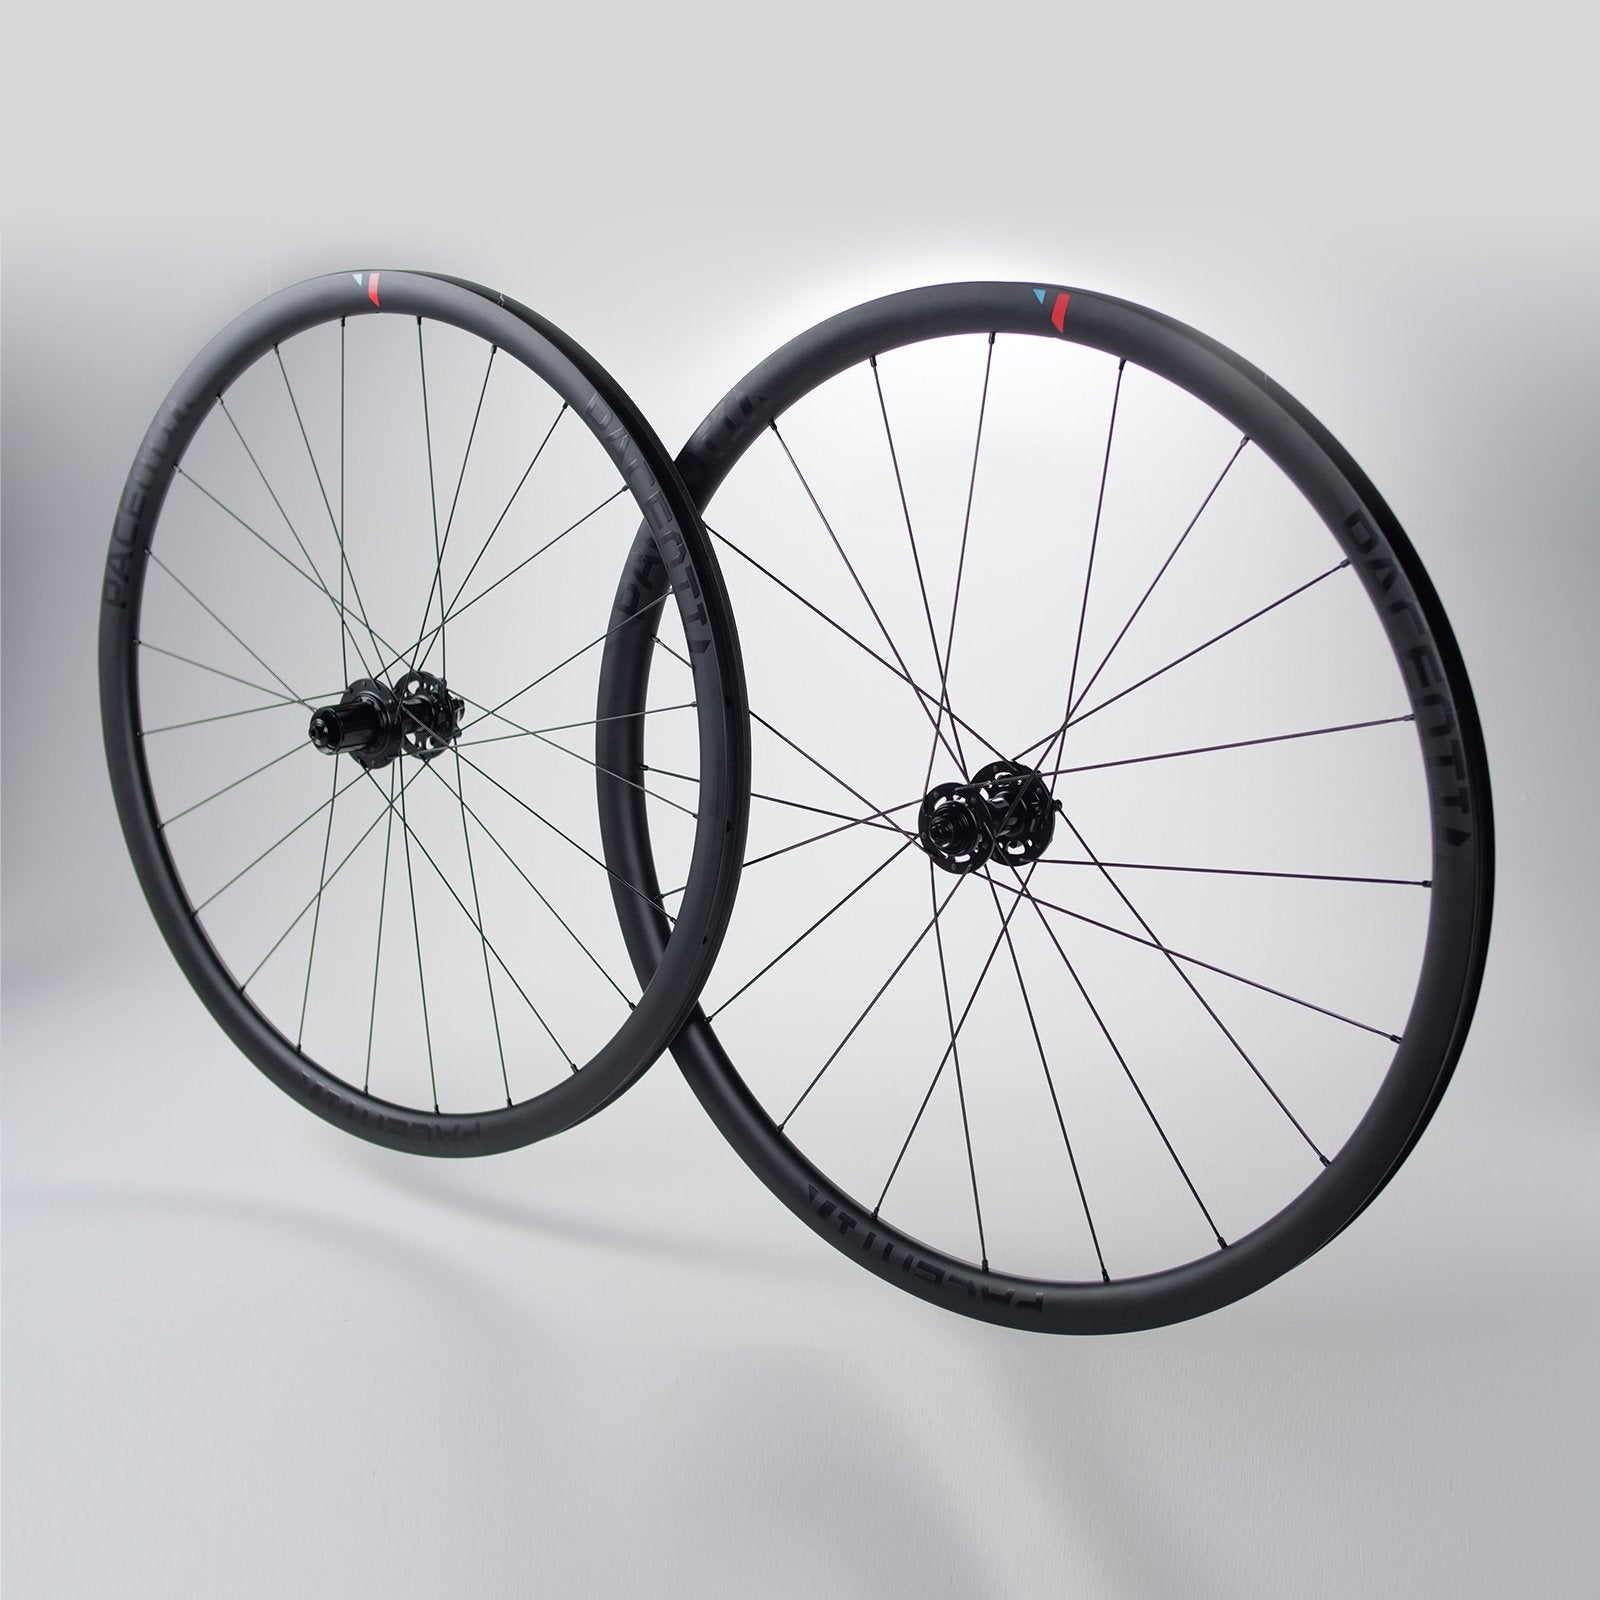 Carbon 30mm rim disc clincher 24h 700c